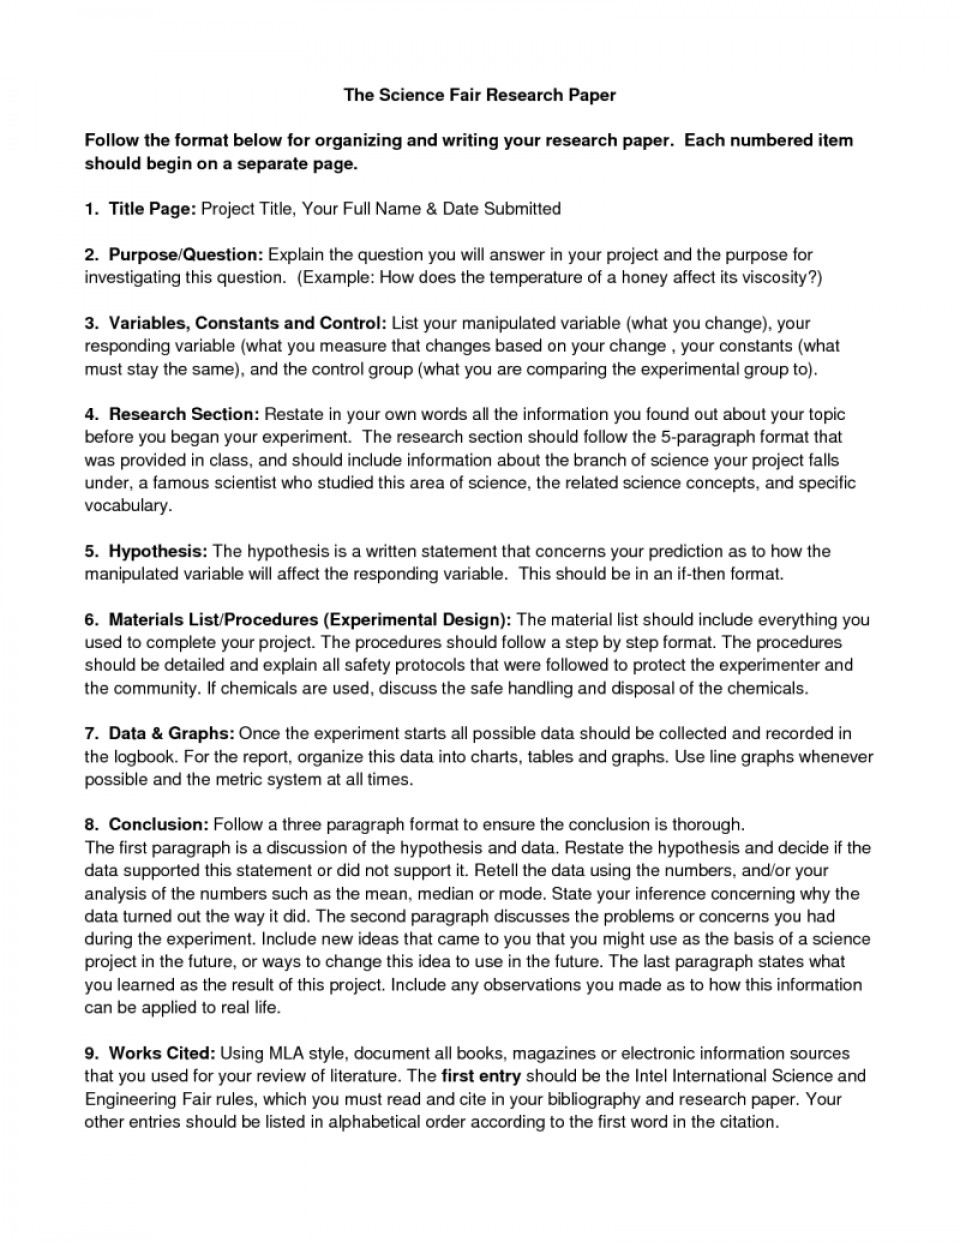 004 Ideas Of Science Fair Research Paper Outline Unique Political Guidelines Guidelinesresize8002c1035 How To Write Unforgettable A For High School 960